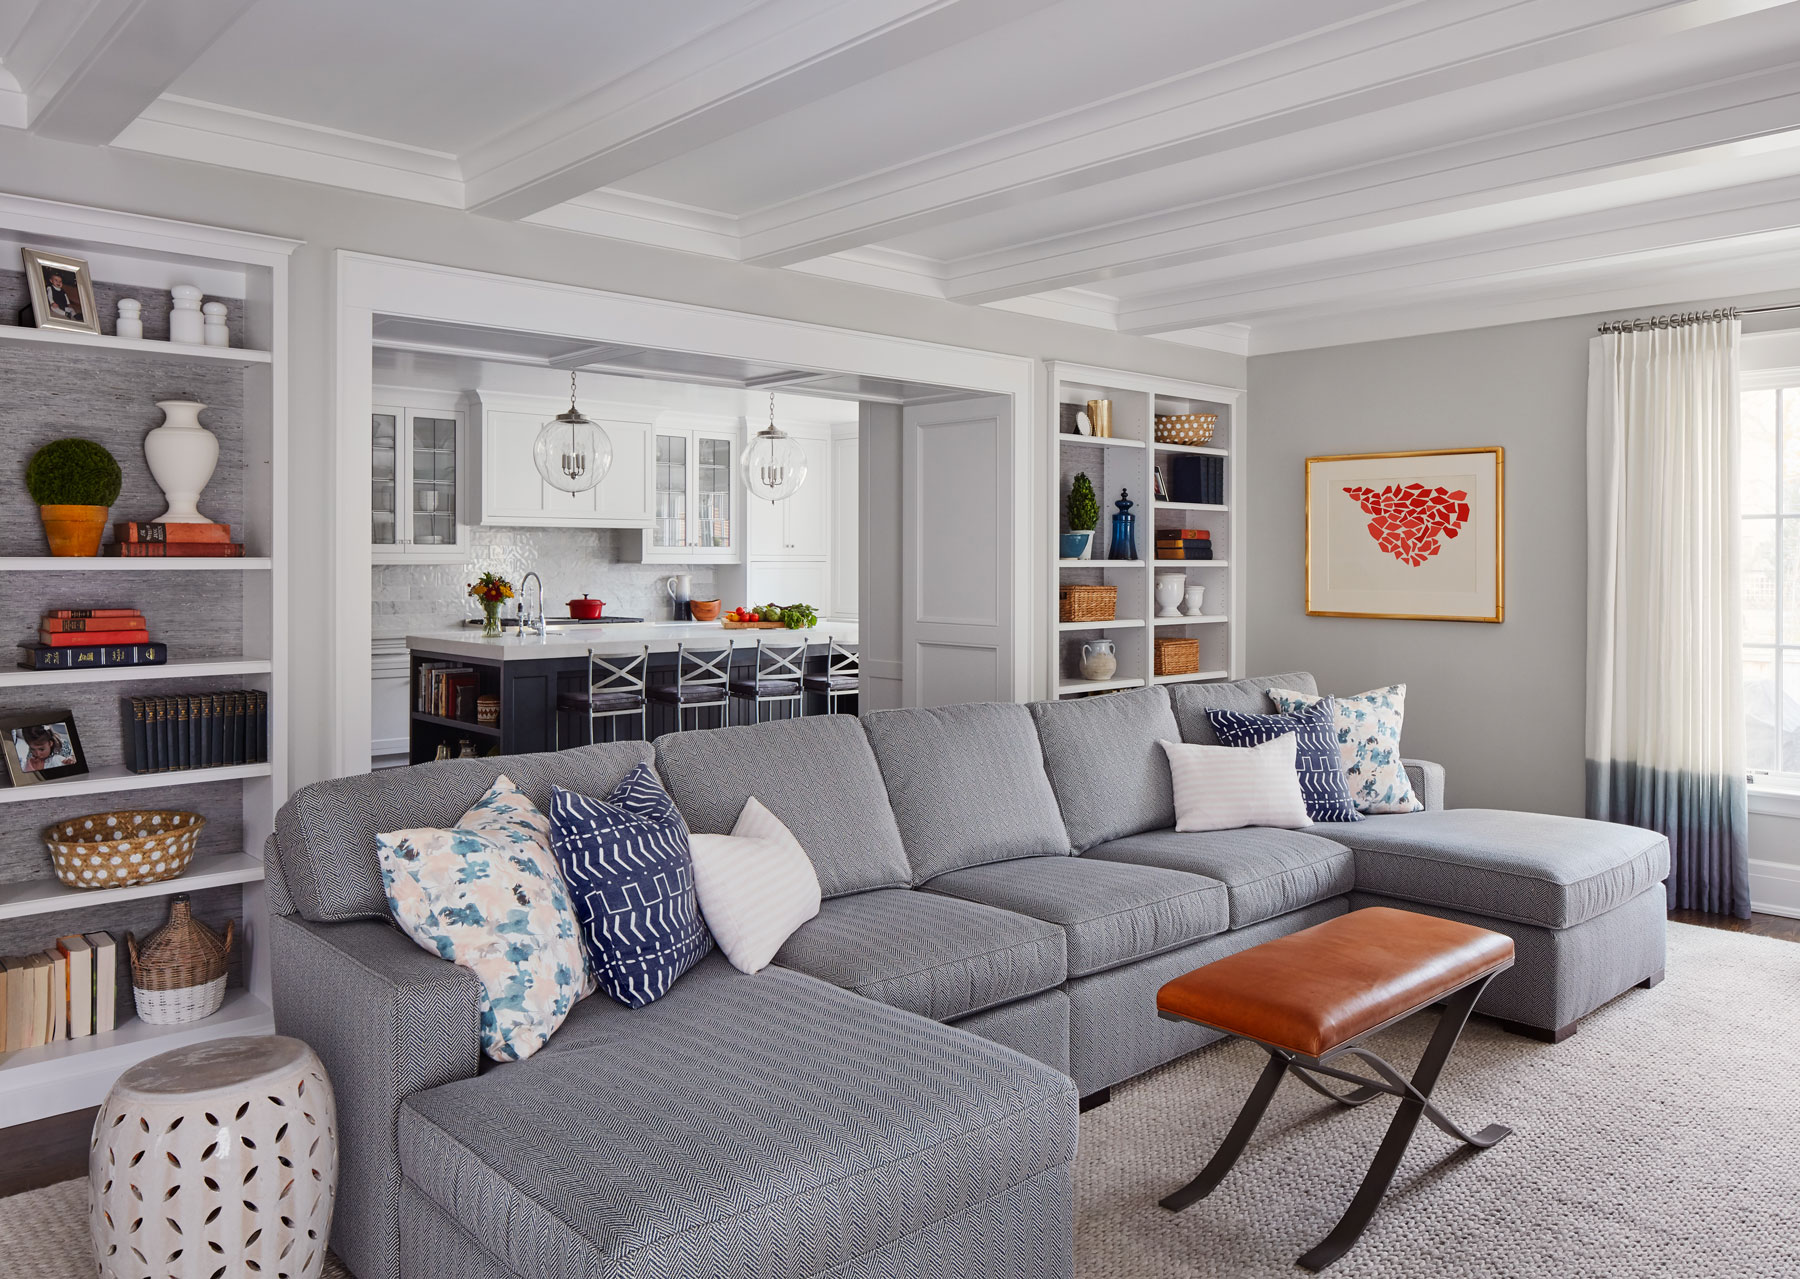 The family room feels much more like the kitchen than the more entertaining-focused living room and foyer, with soft textures and more neutral tones (though there are still plenty of touches of blue).